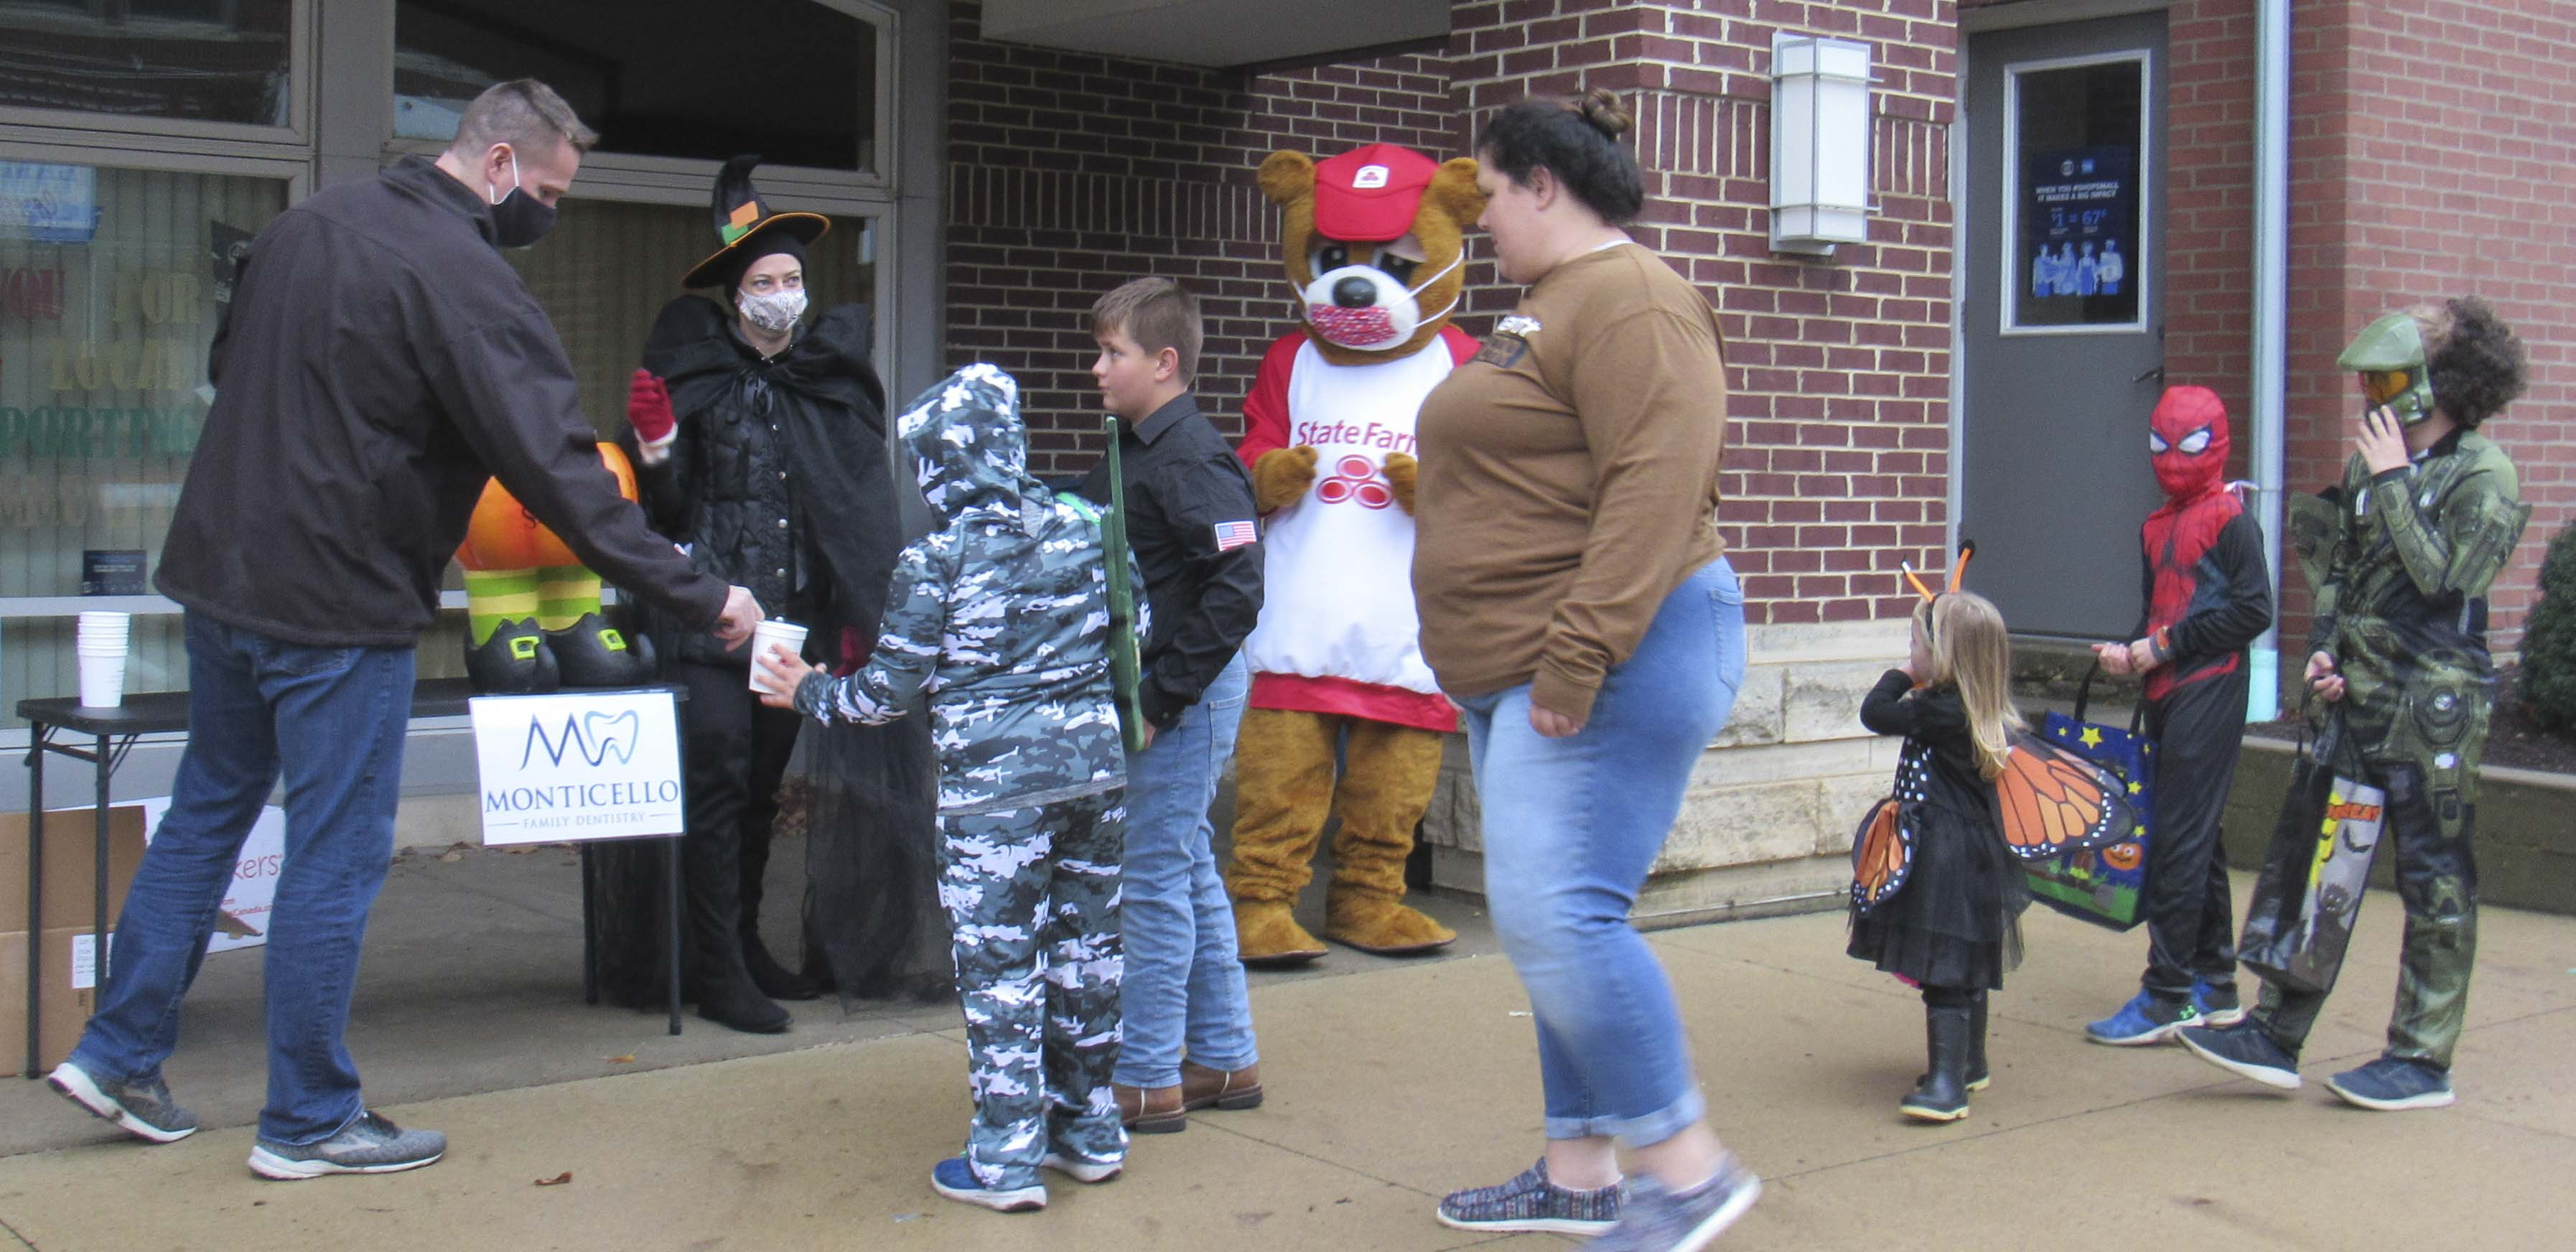 Rick Meyer with State Farm and Dr. Lindsey Meyer with Monticello Family Dentistry hand out candy and hot chocolate to kids and parents. The State Farm Good Neighbear also greeted kids, making sure he wore a facemask.